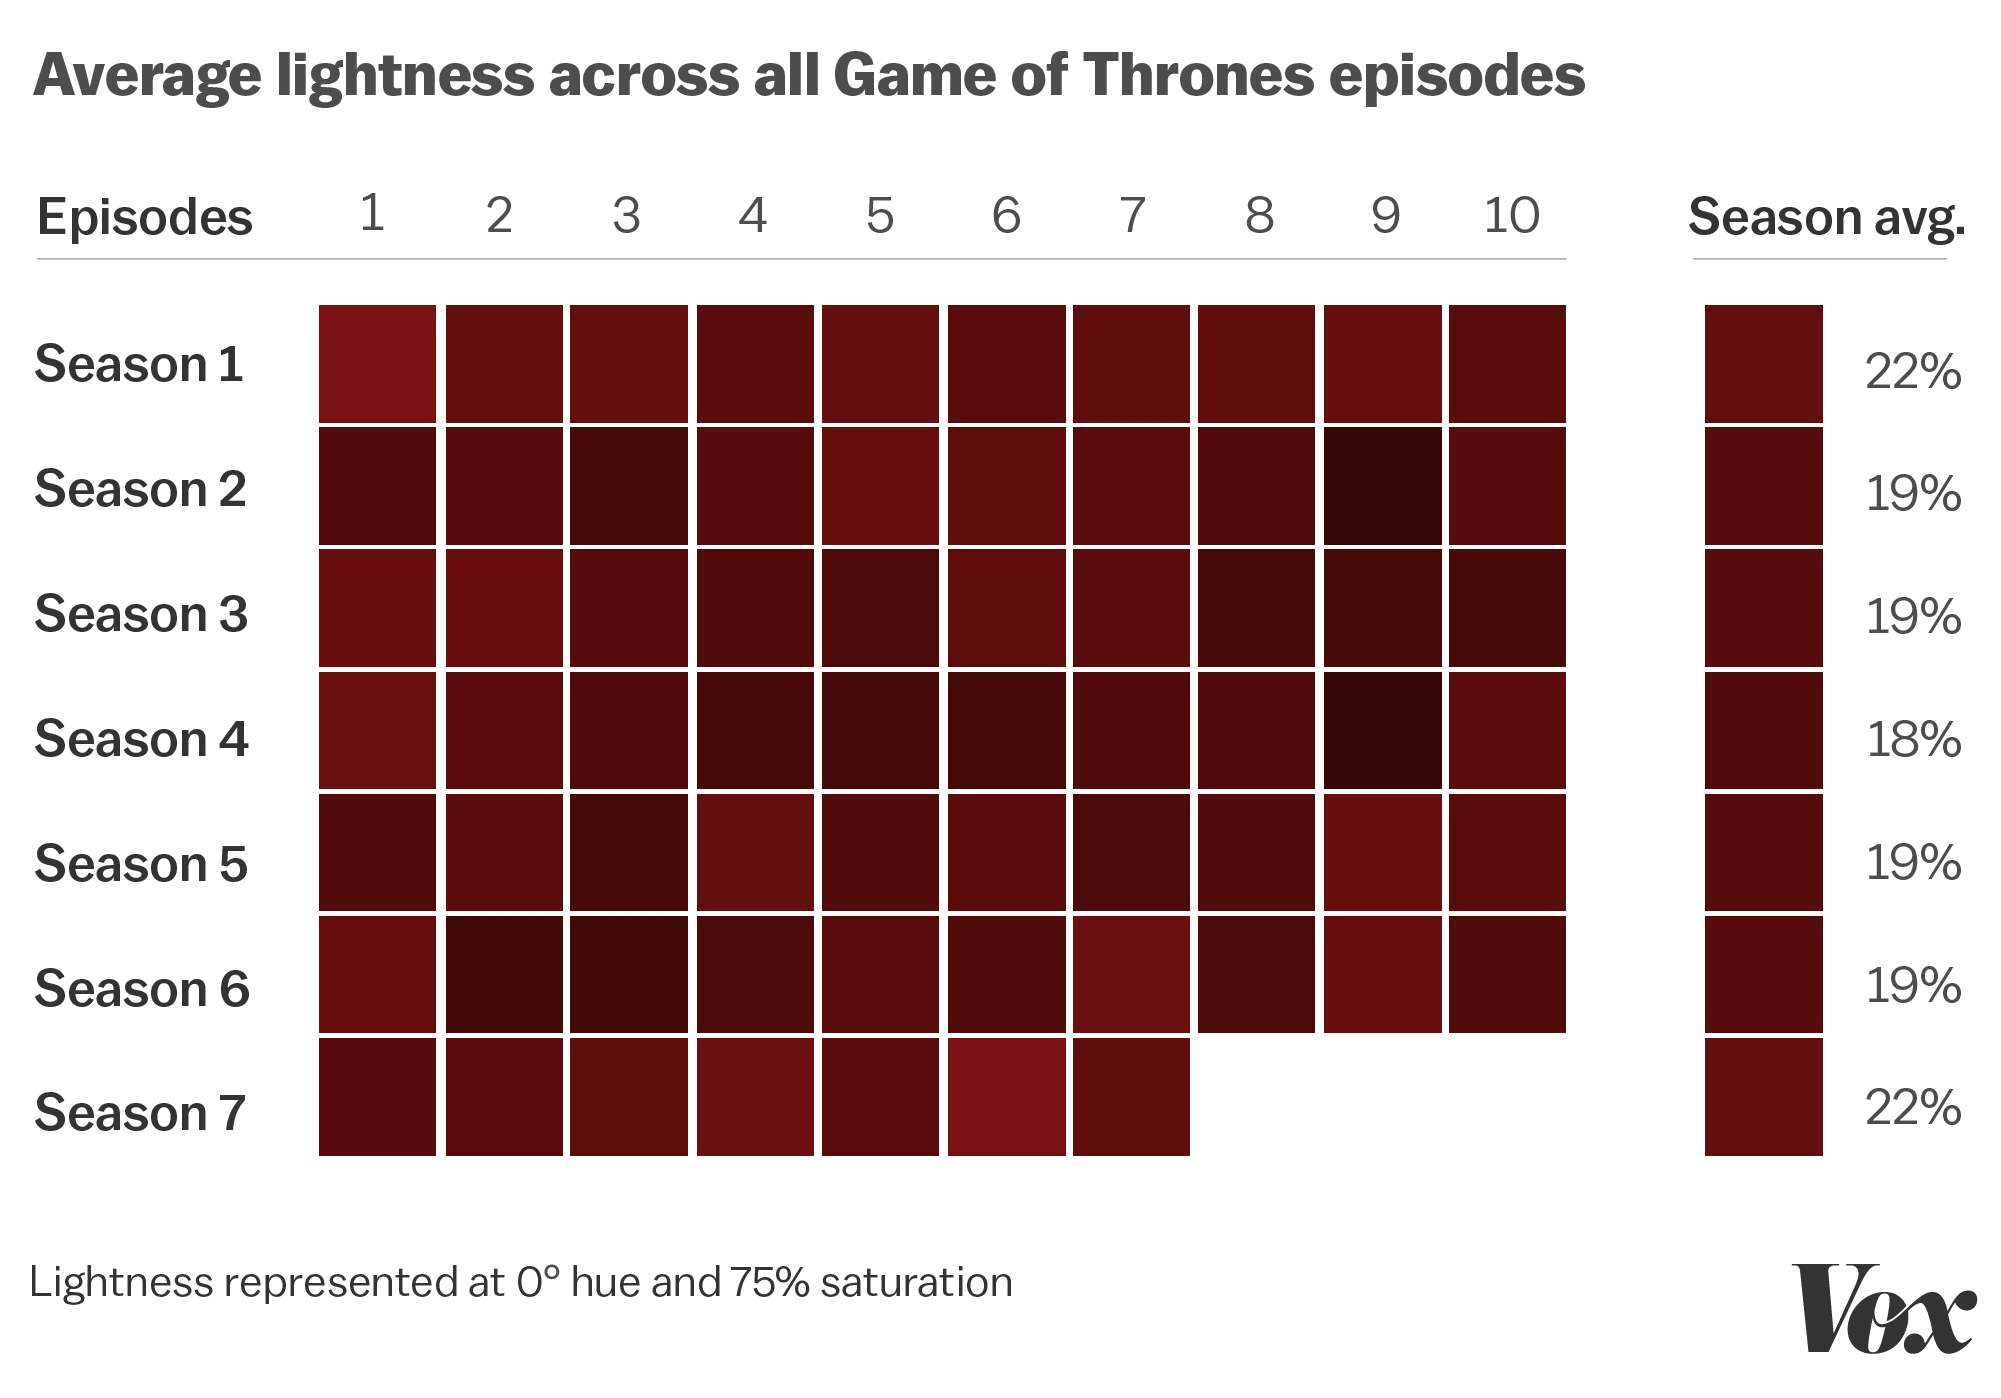 Dragons game of thrones colors - Game Of Thrones Seventh Season Was The Series Coldest So Far As Well As One Of The Bleakest It Remains To Be Seen Whether Season Eight Will Bring More